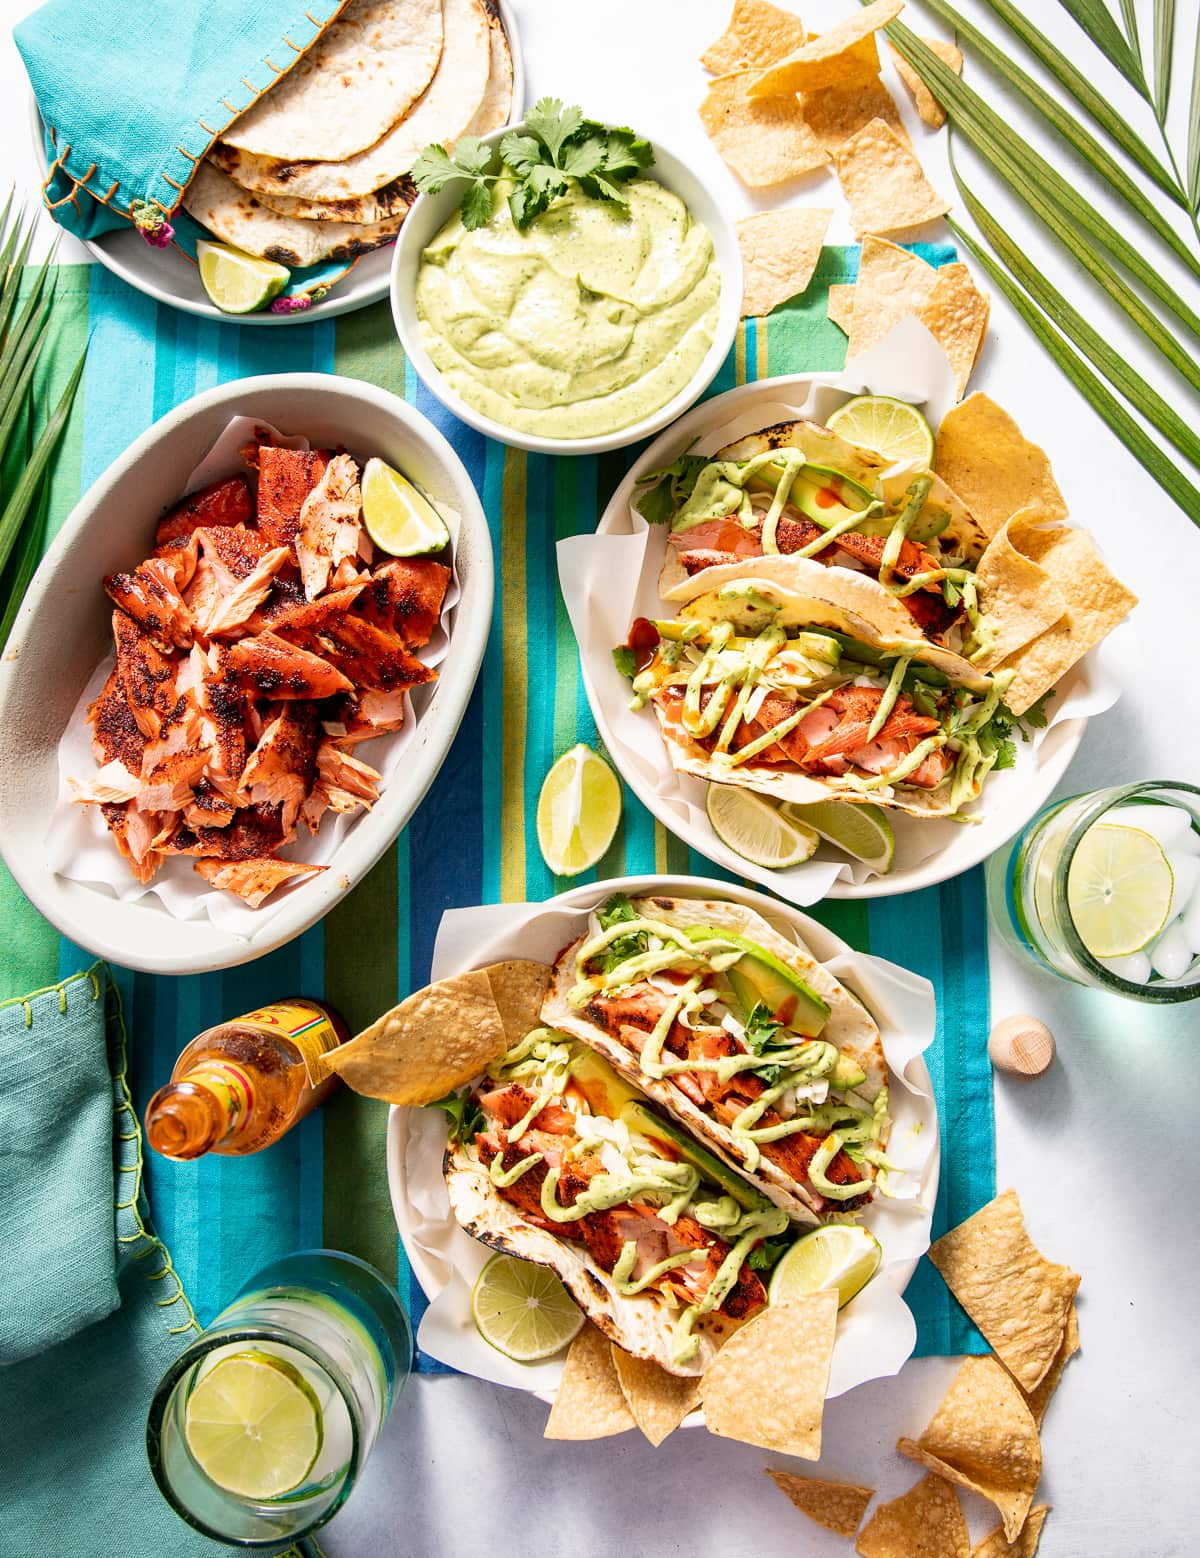 smoked salmon tacos in white bowls with chips smoked salmon a bowl green avocado crema in a white bowl plate of tortillas